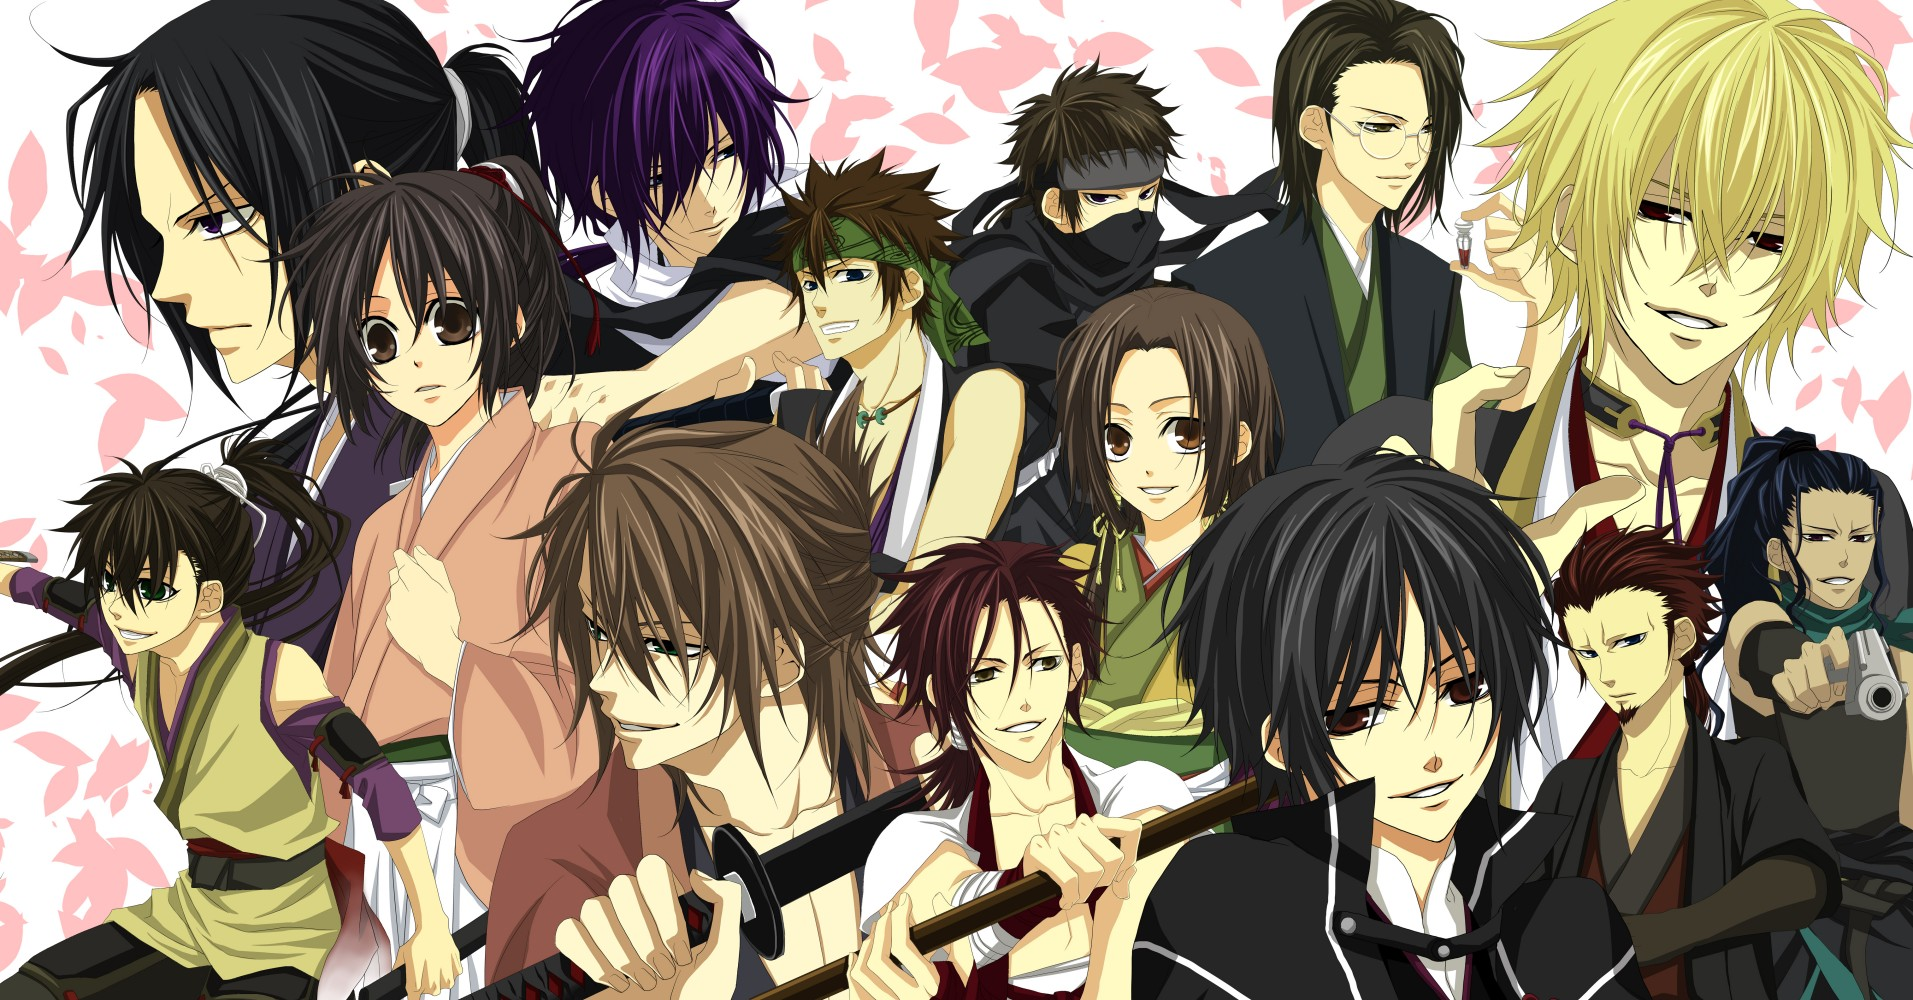 Hakuouki Shinsengumi Kitan Backgrounds, Compatible - PC, Mobile, Gadgets| 1913x1000 px